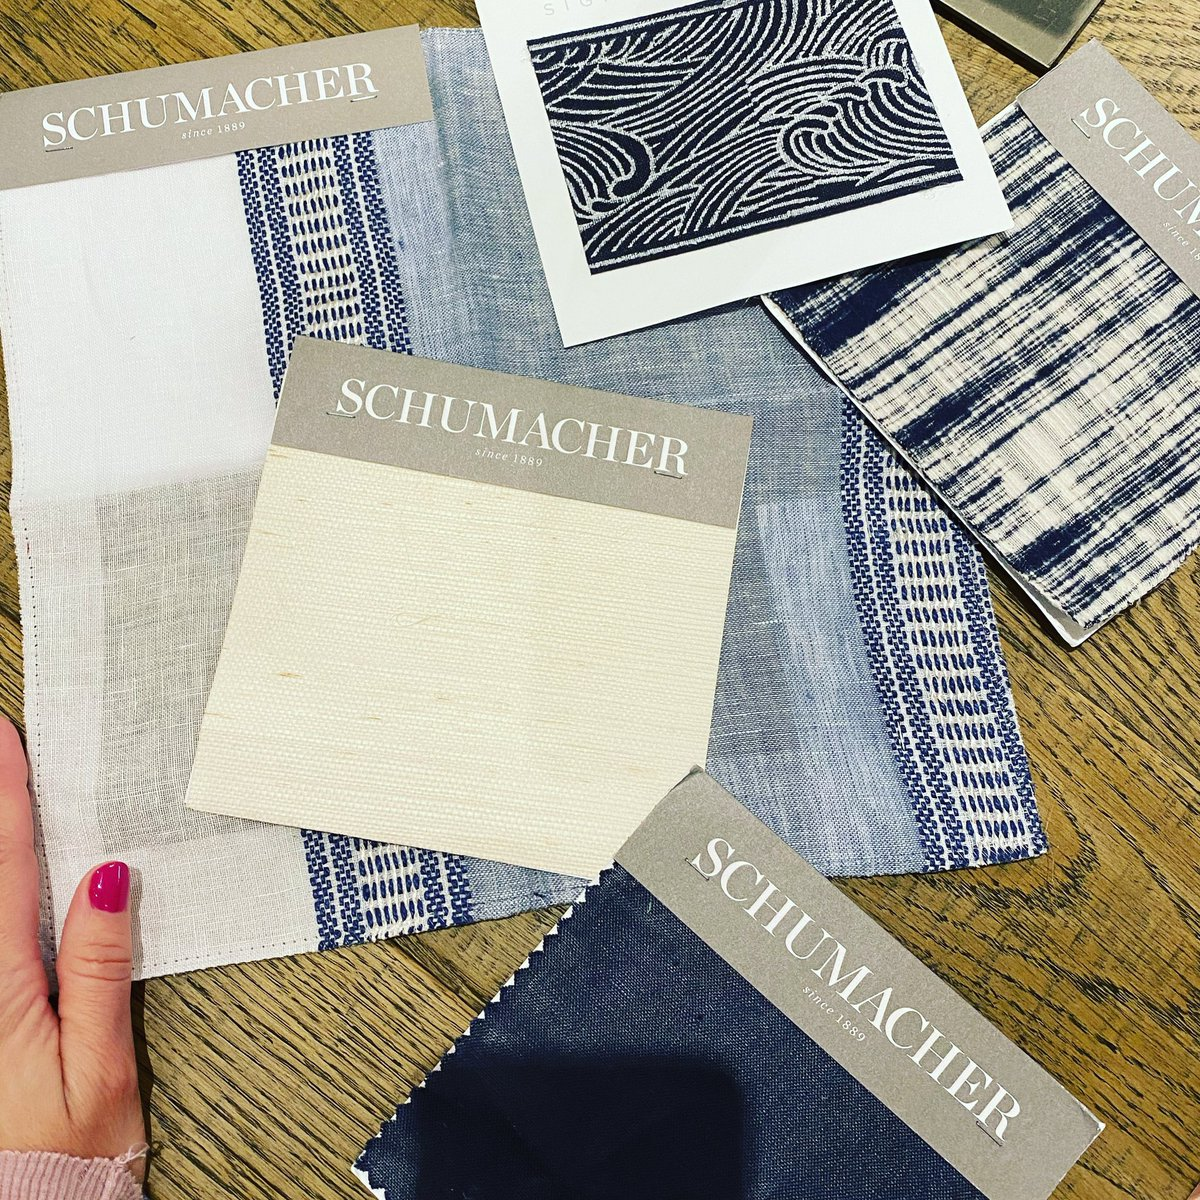 Nothing like a midday treat from @schumacher1889 ! Thank you for the new samples to add to our collection. Our clients will love them! . #schumacher #schumacherfabrics @KMcKay_Designs